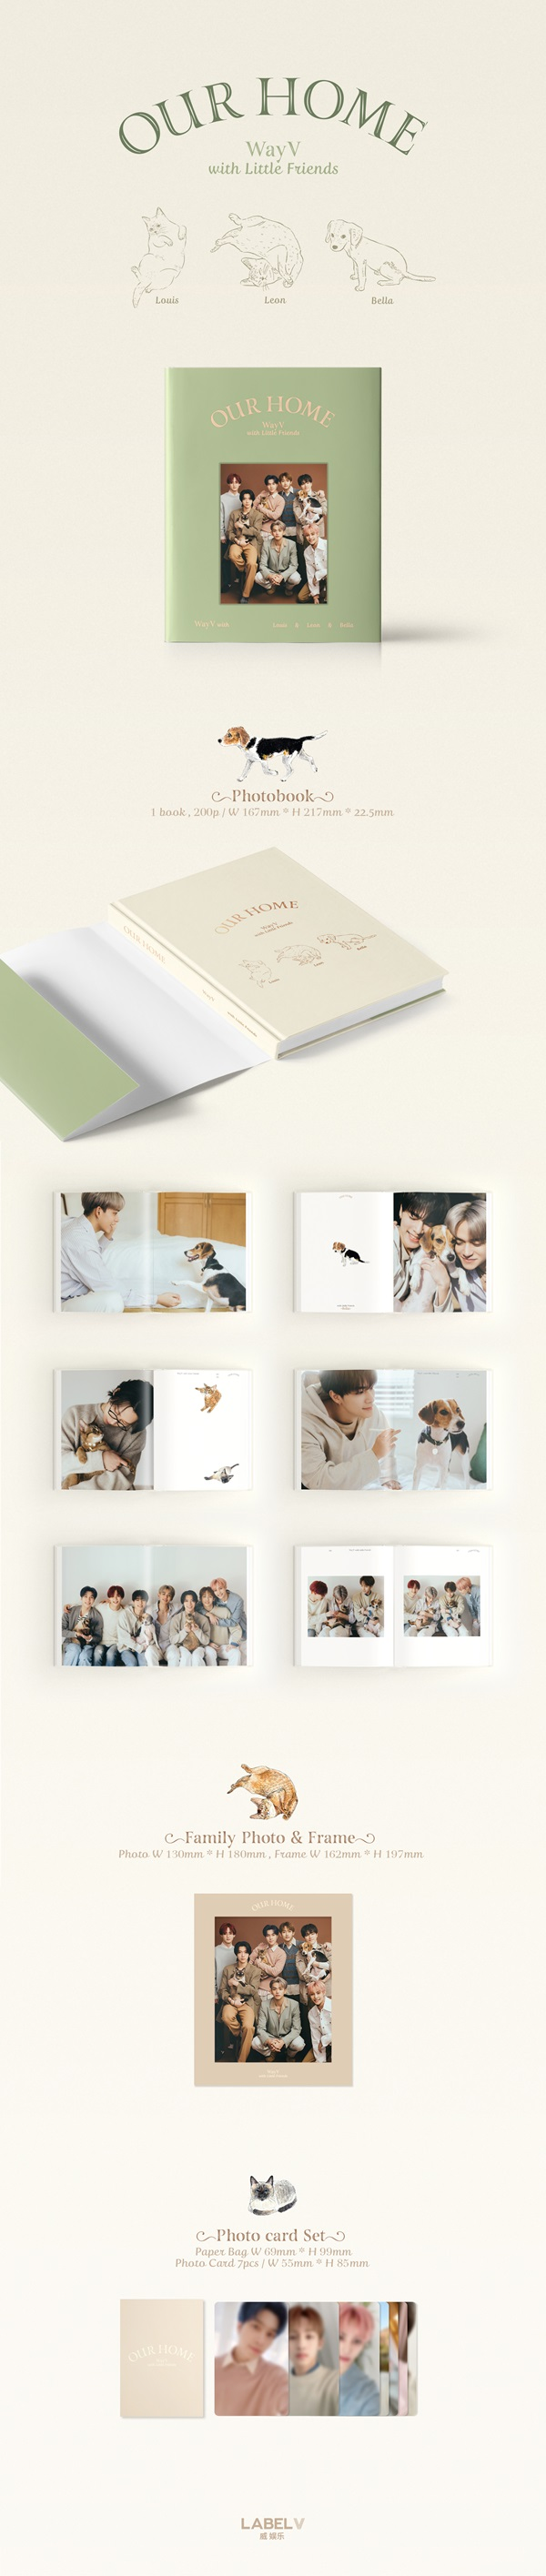 Our Home: WayV with Little Friends_2